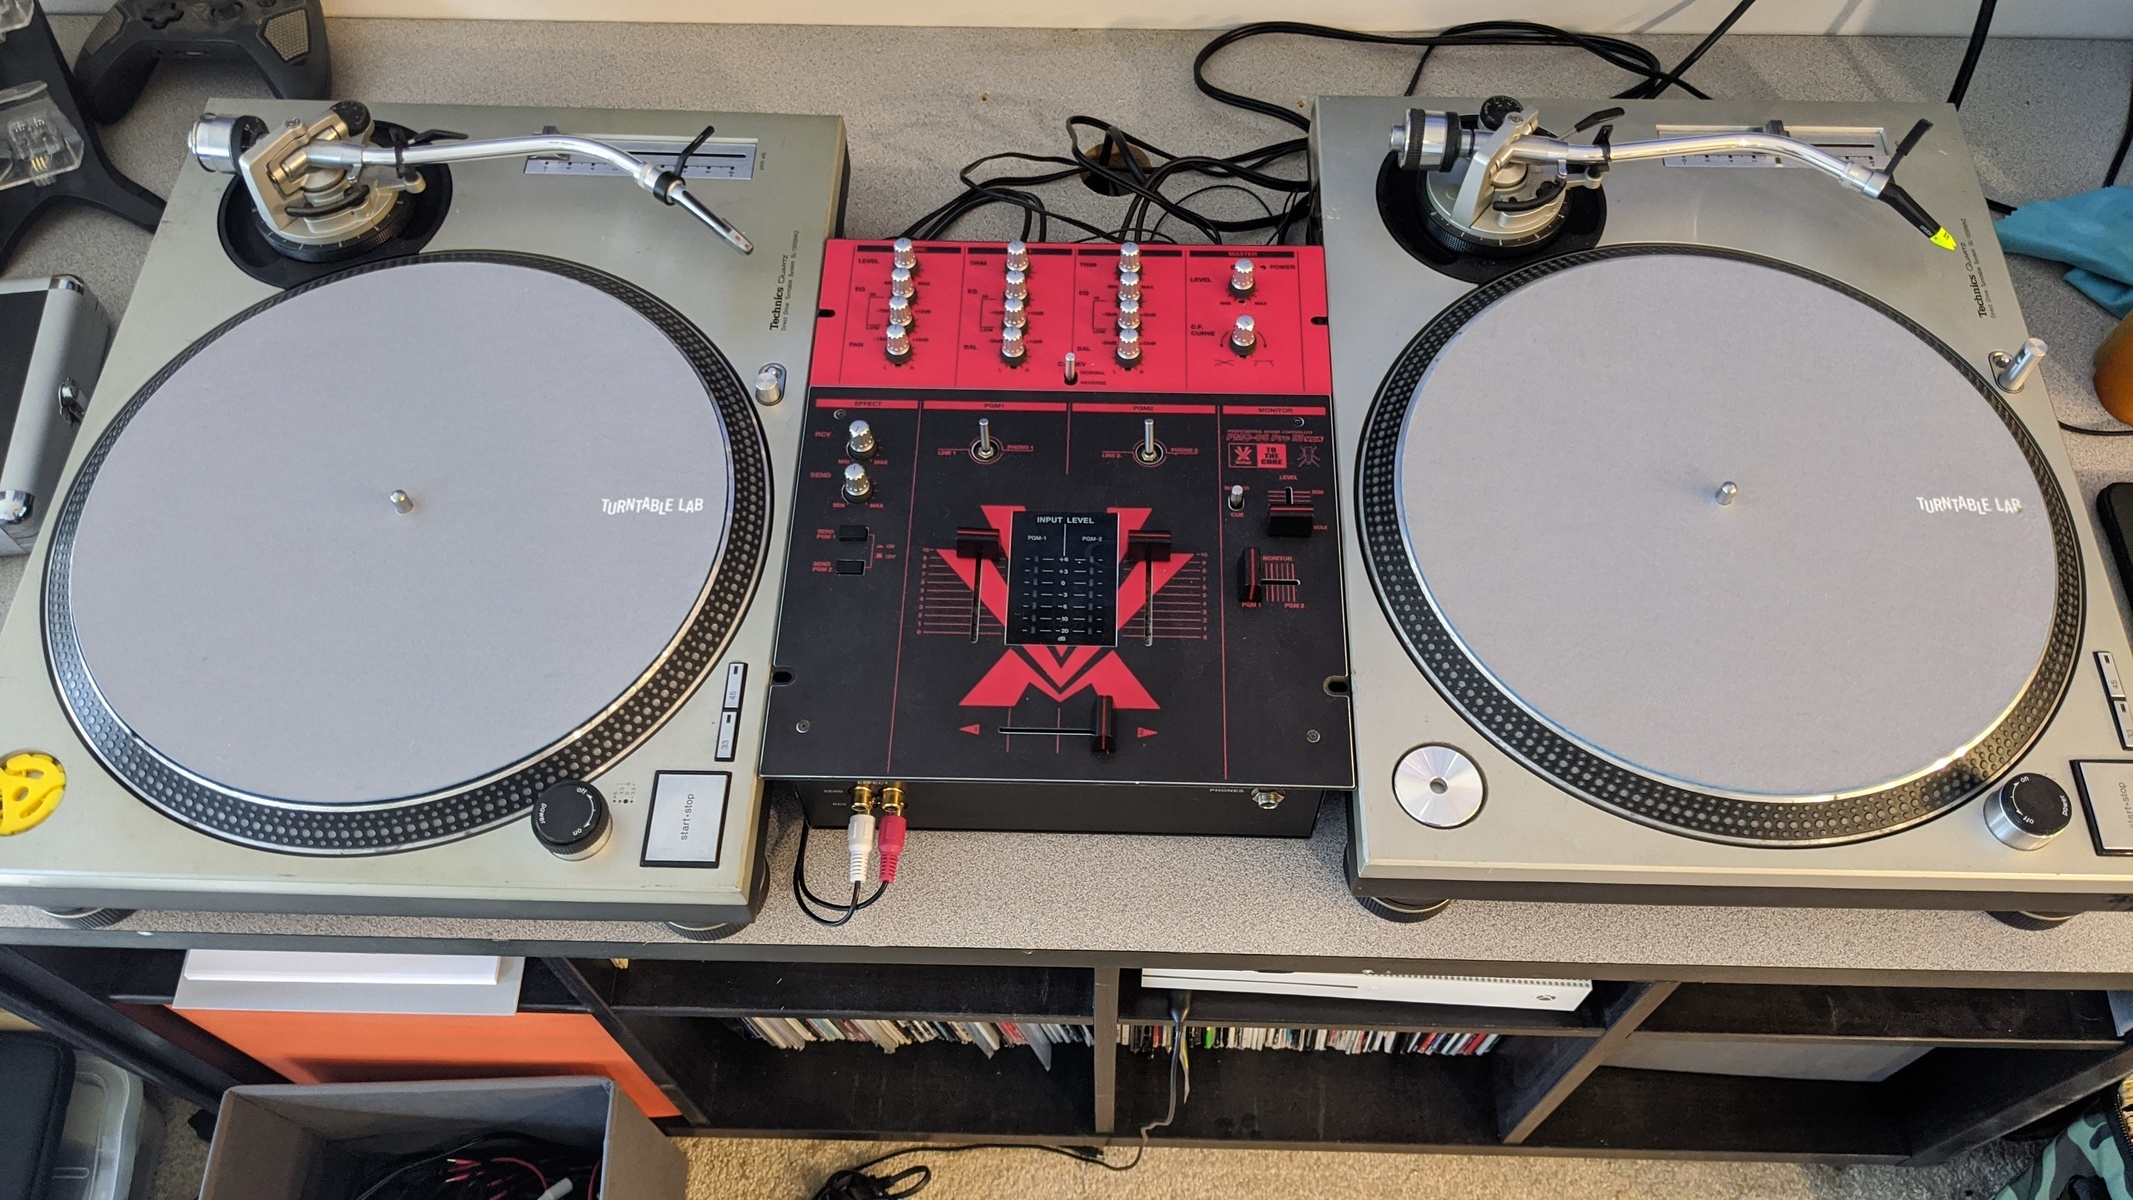 Photo of Technics SL-1200MK2 Turntable and more gear in a DJ